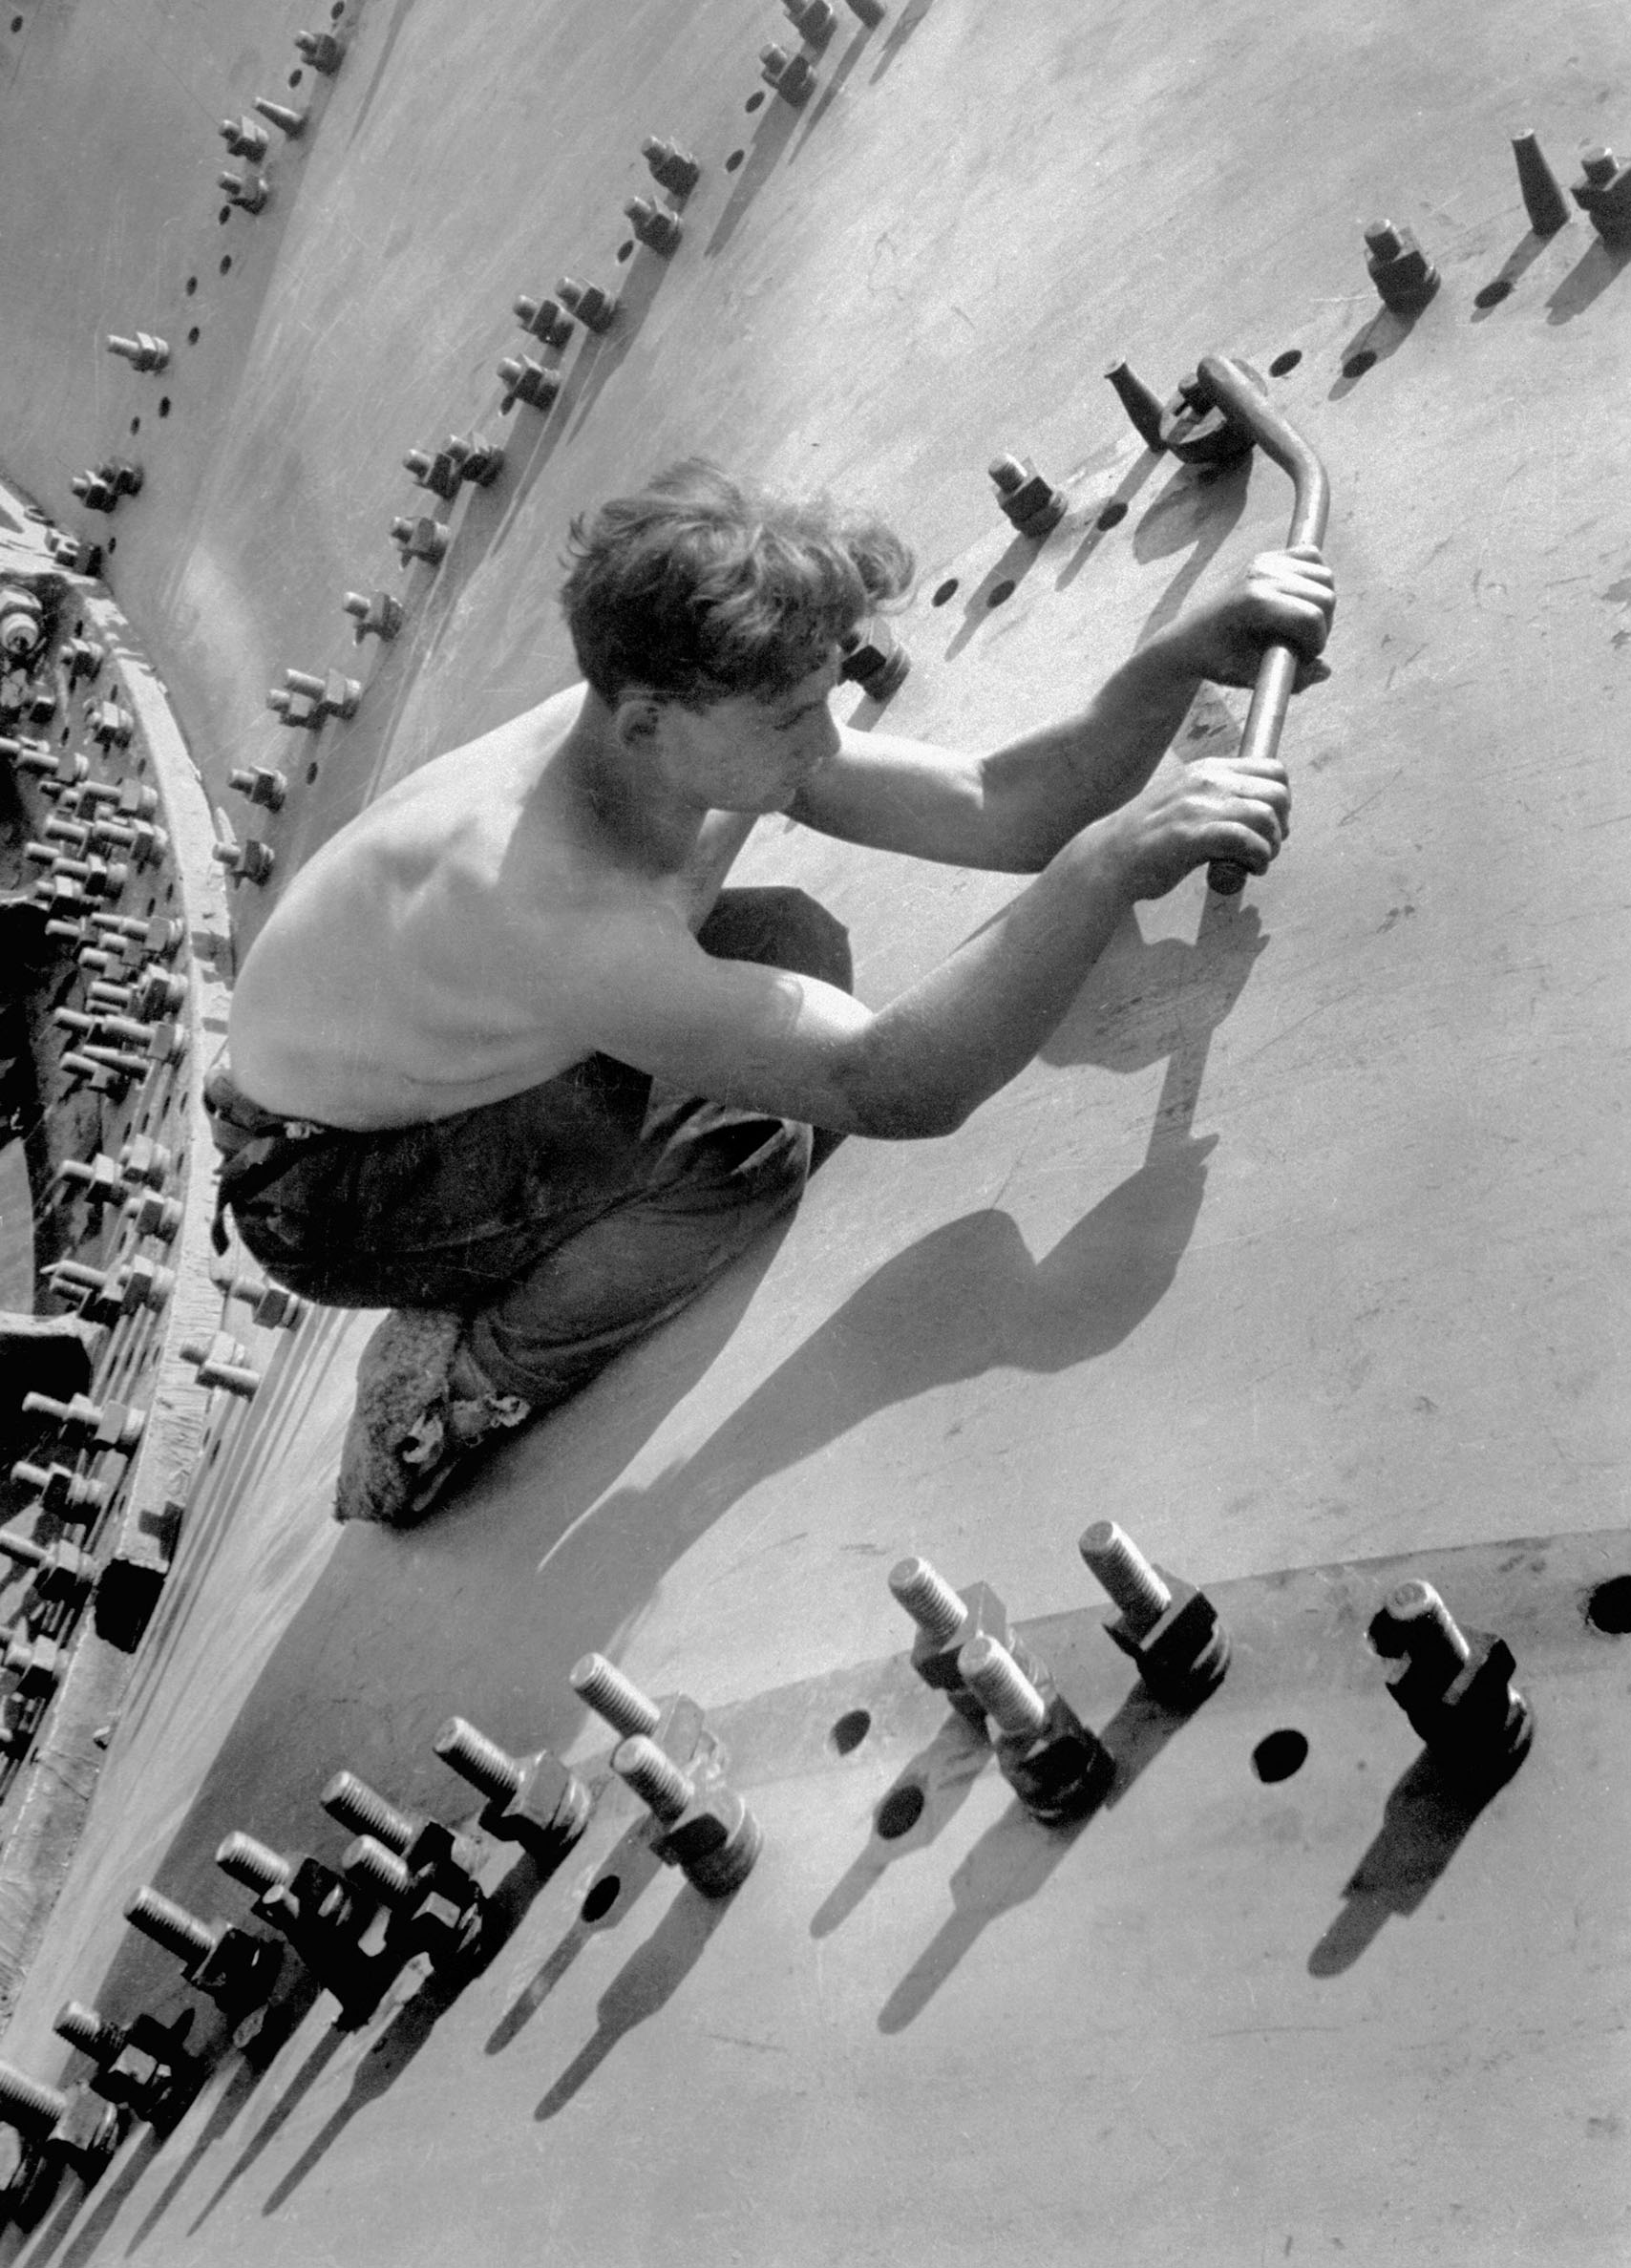 Margaret Bourke-White: Man tightening the large nuts on the turbine shell of the Dneprostroi Hydroelectric Plant nearZaporizhia, Soviet Union (now Ukraine), 1930Margaret Bourke White / Masters by Getty Images © Time & Life / Getty Images